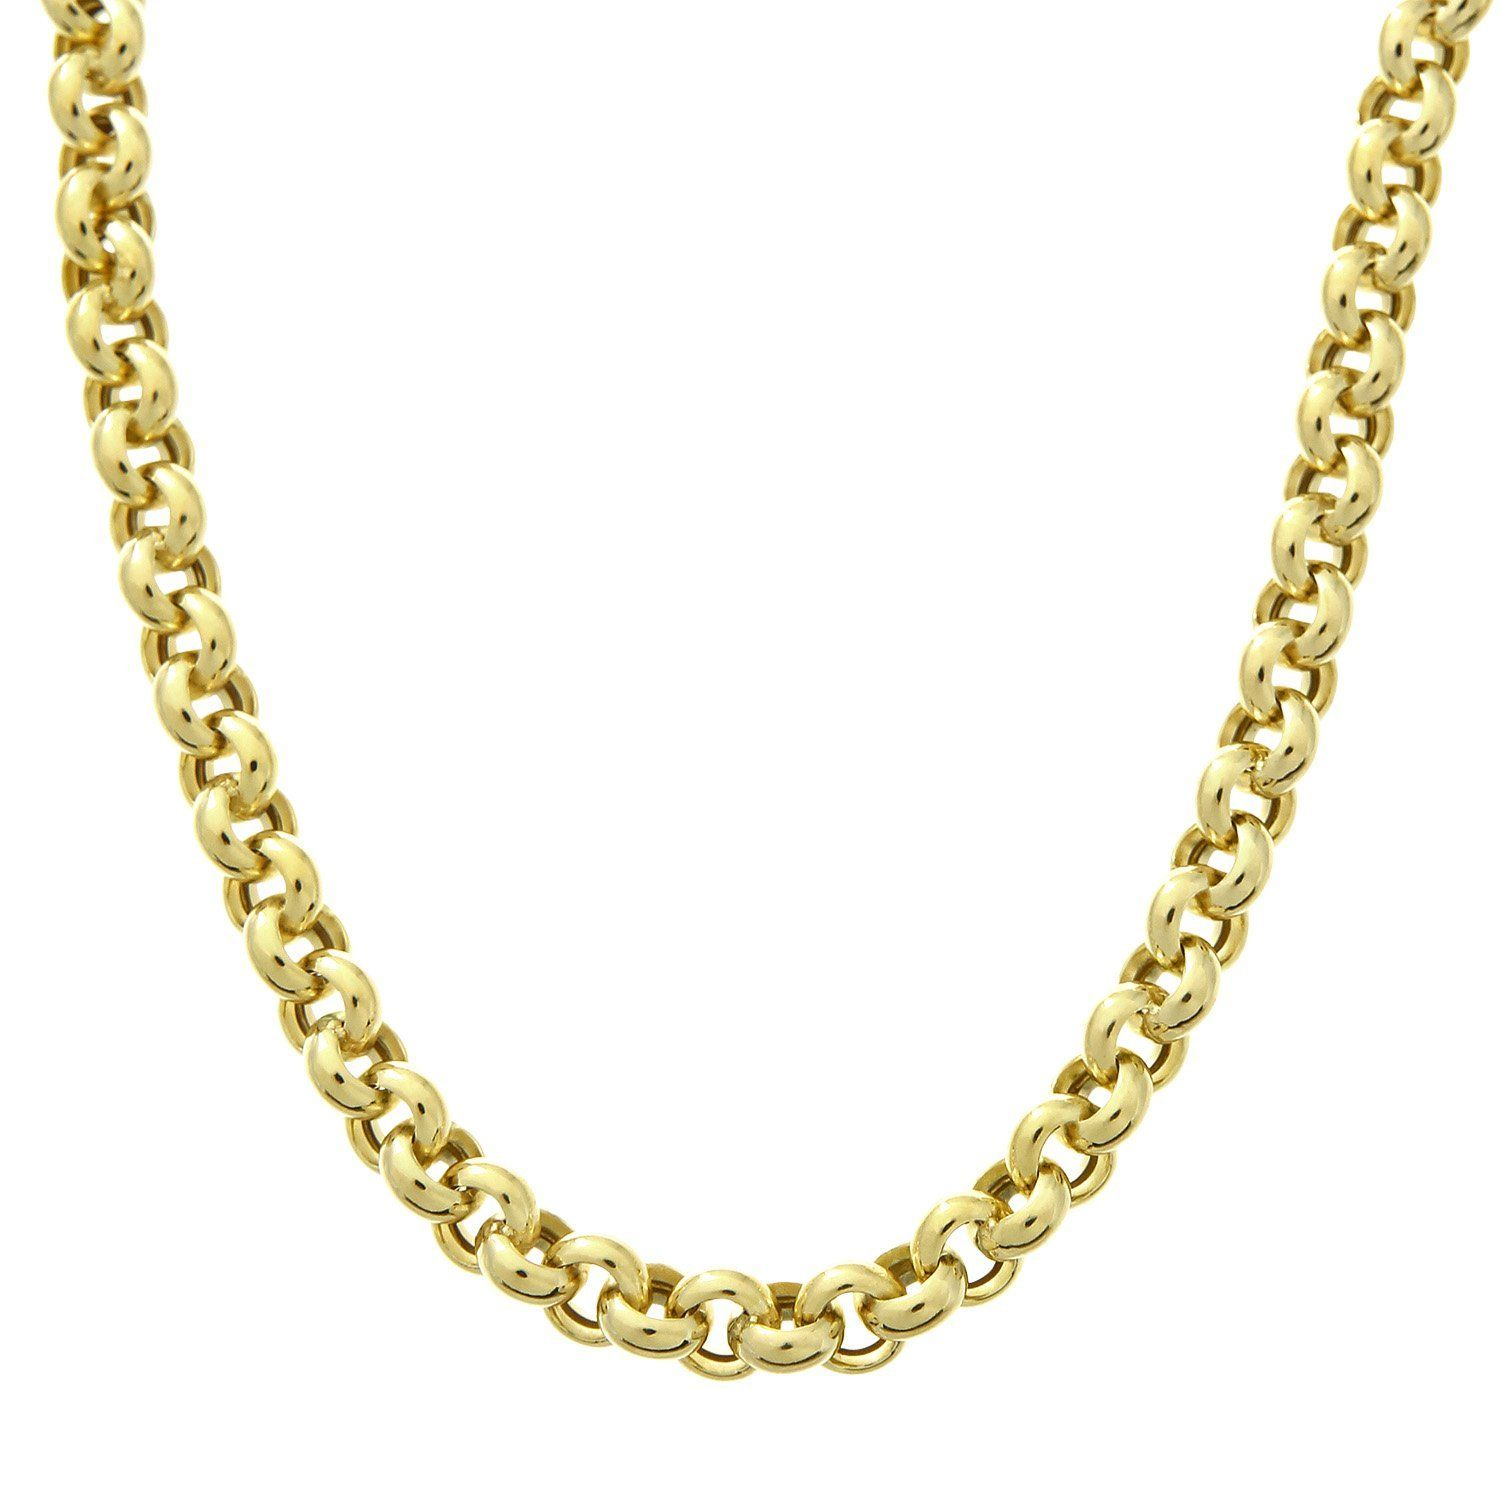 Citerna 9 ct Yellow Gold Wide Anchor Chain Necklace dyYVq